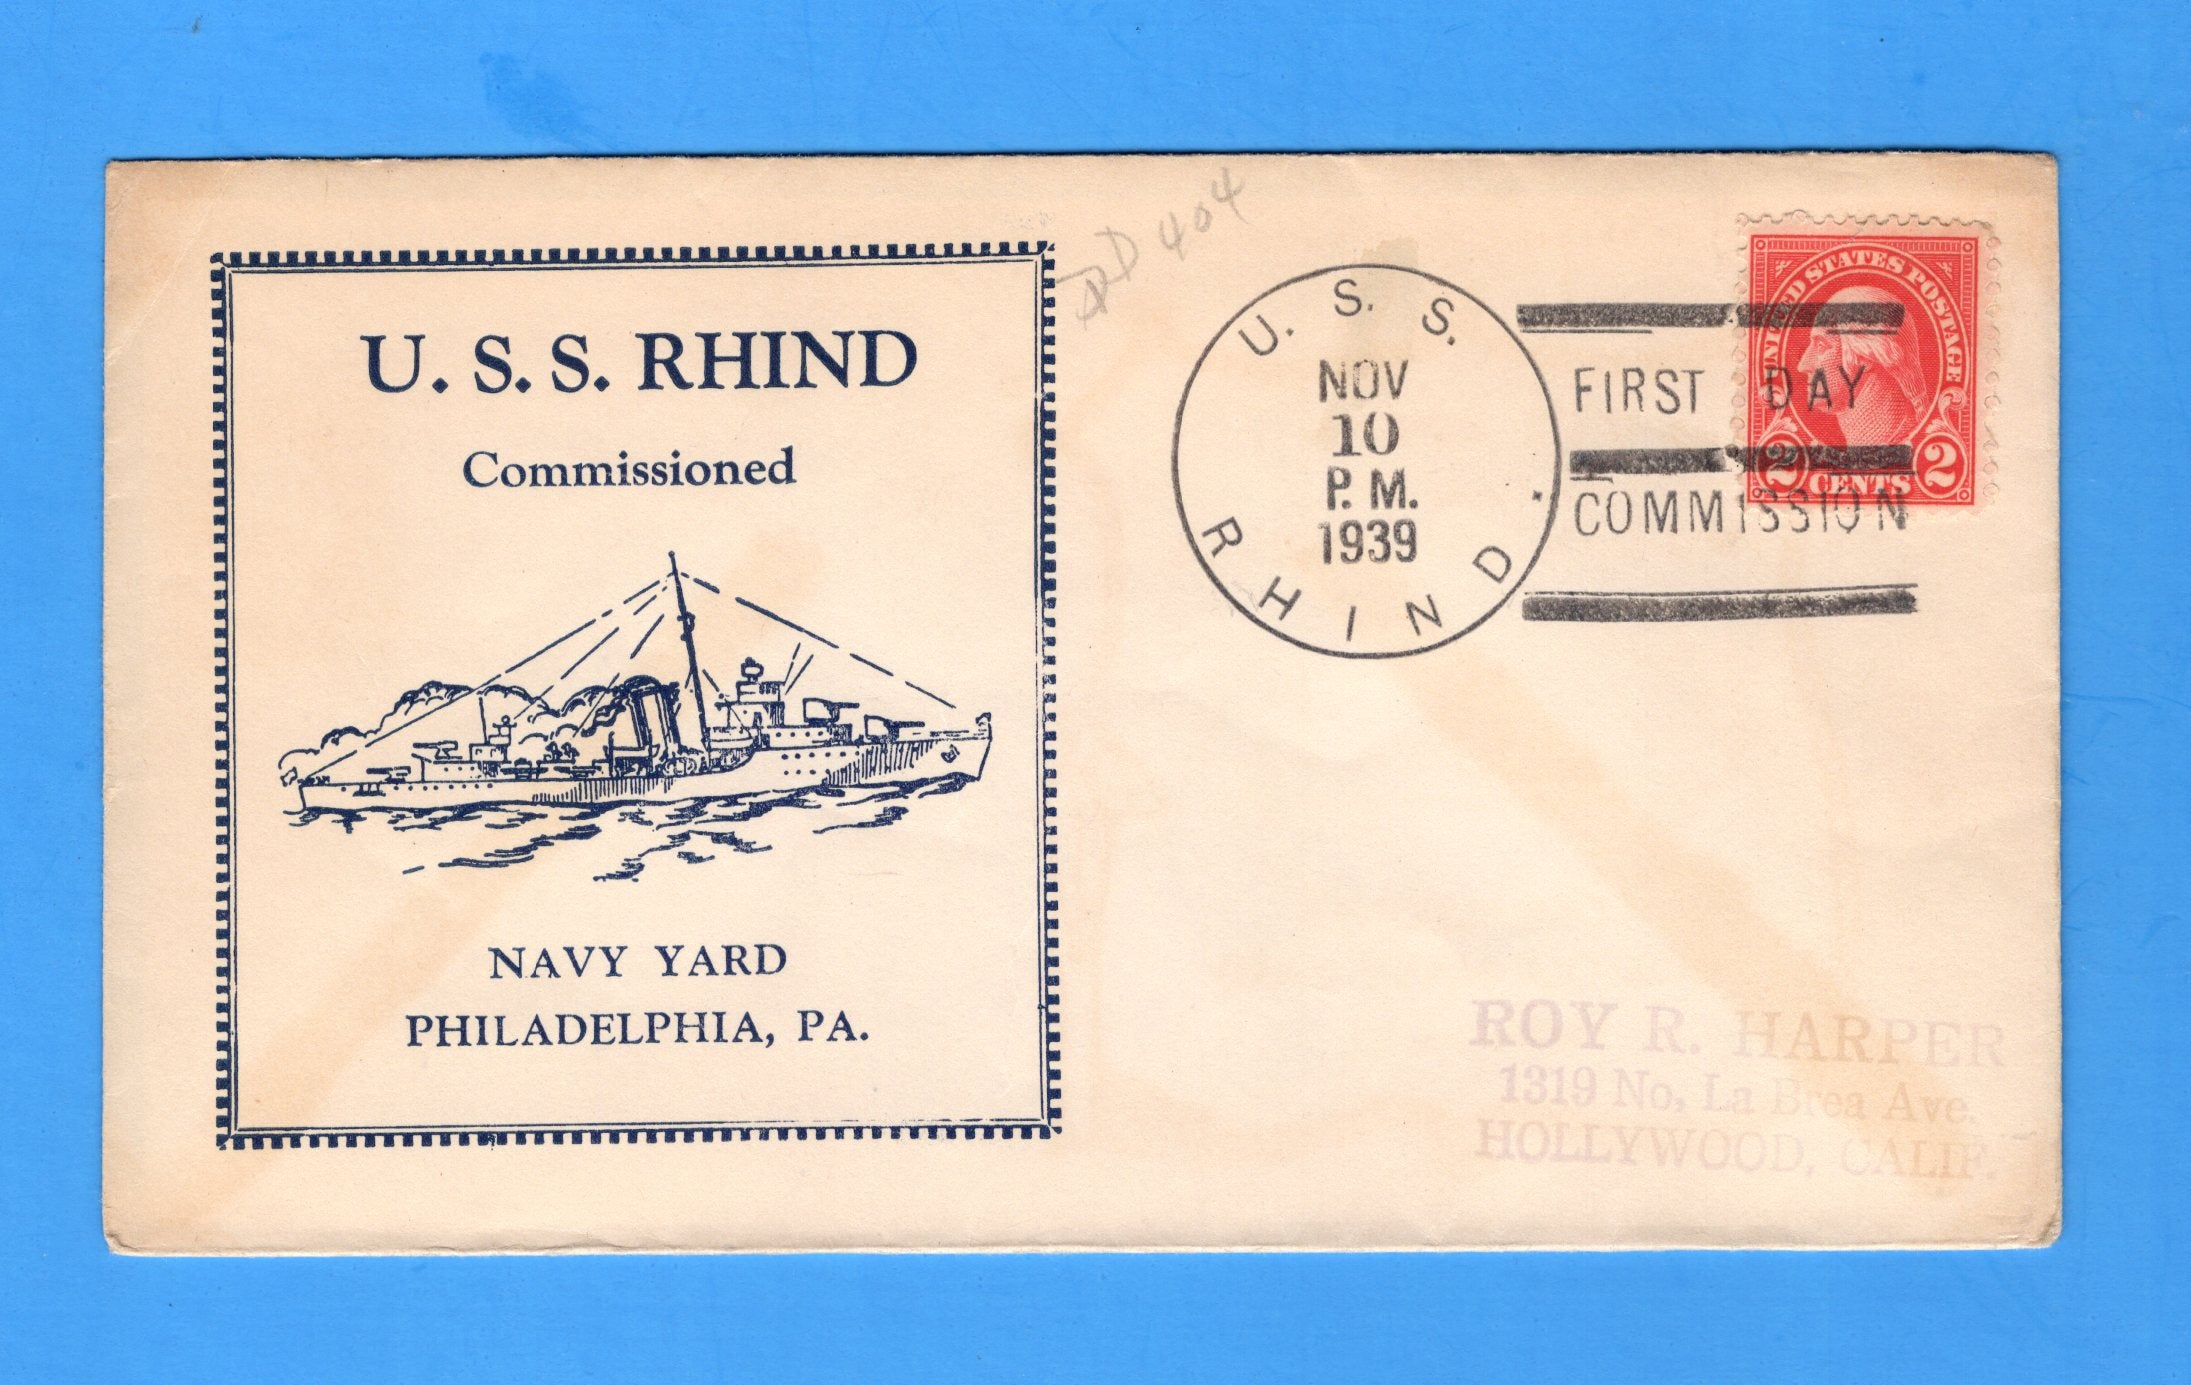 USS Rhind DD-404 Commissioned November 10, 1939